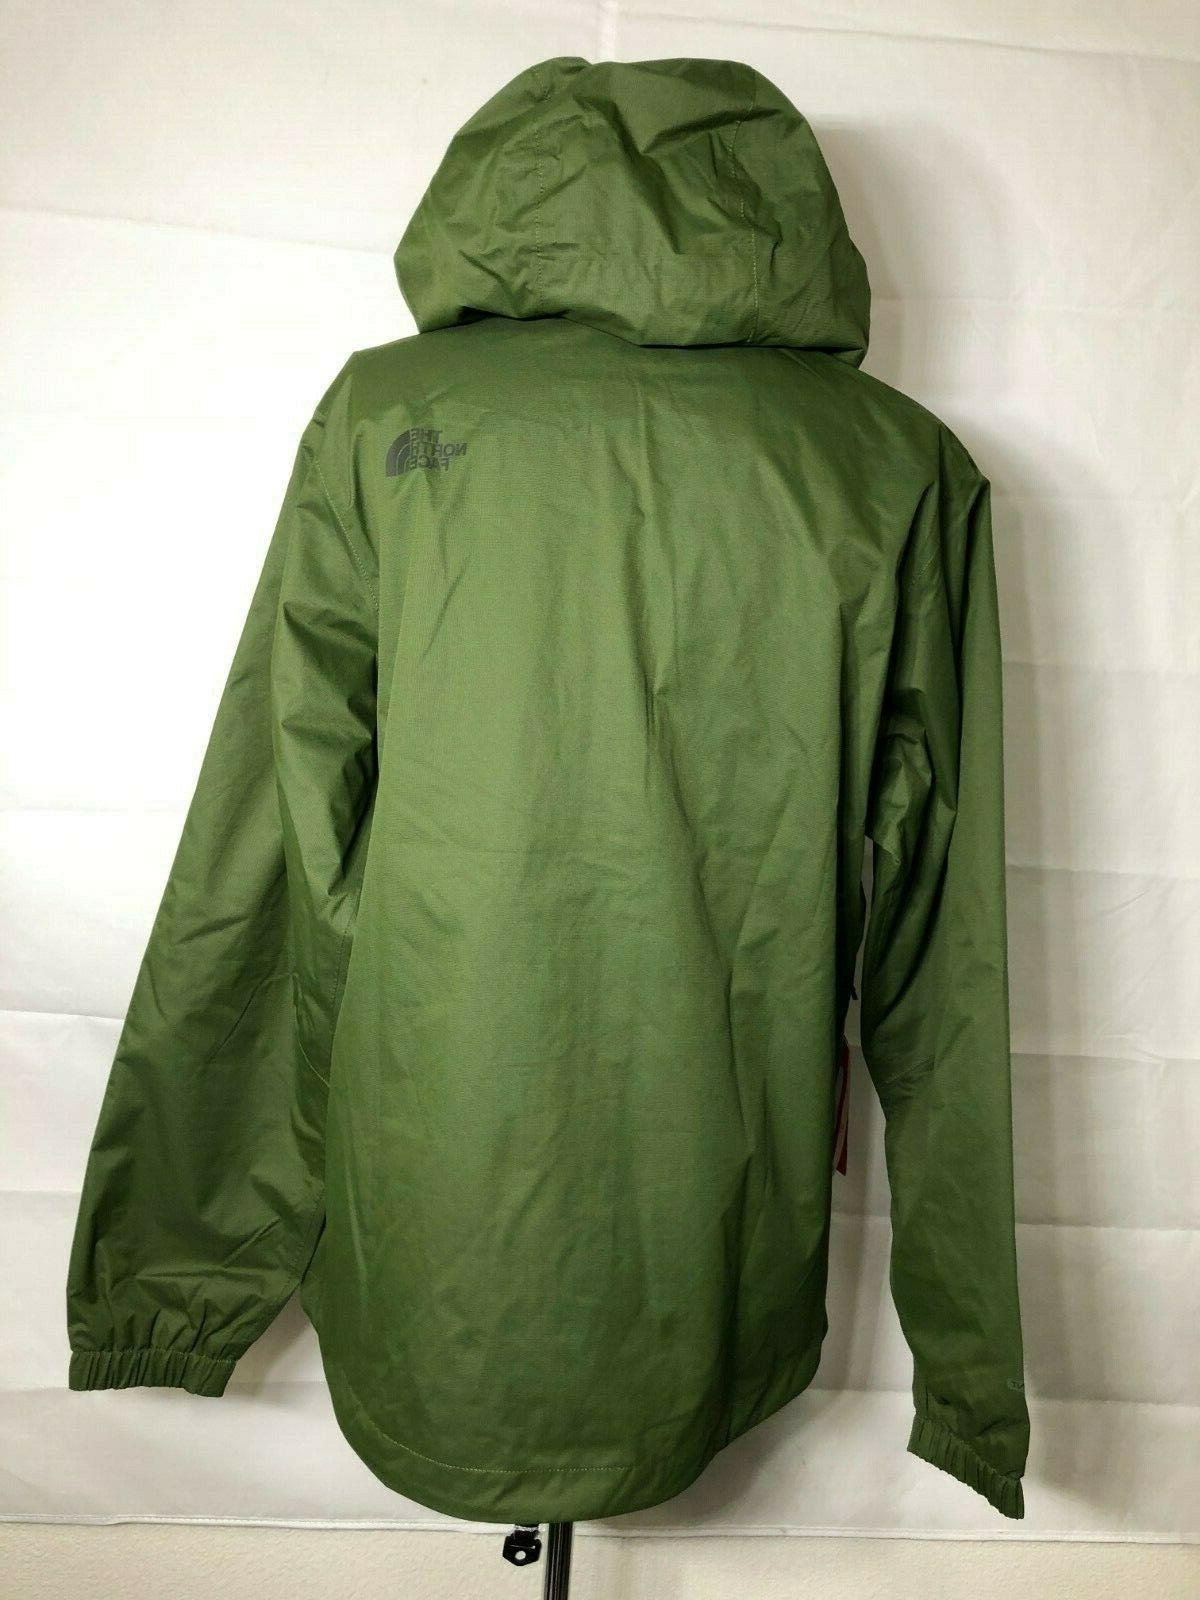 NWT THE NORTH FACE Men's Quest Waterproof Hooded Rain